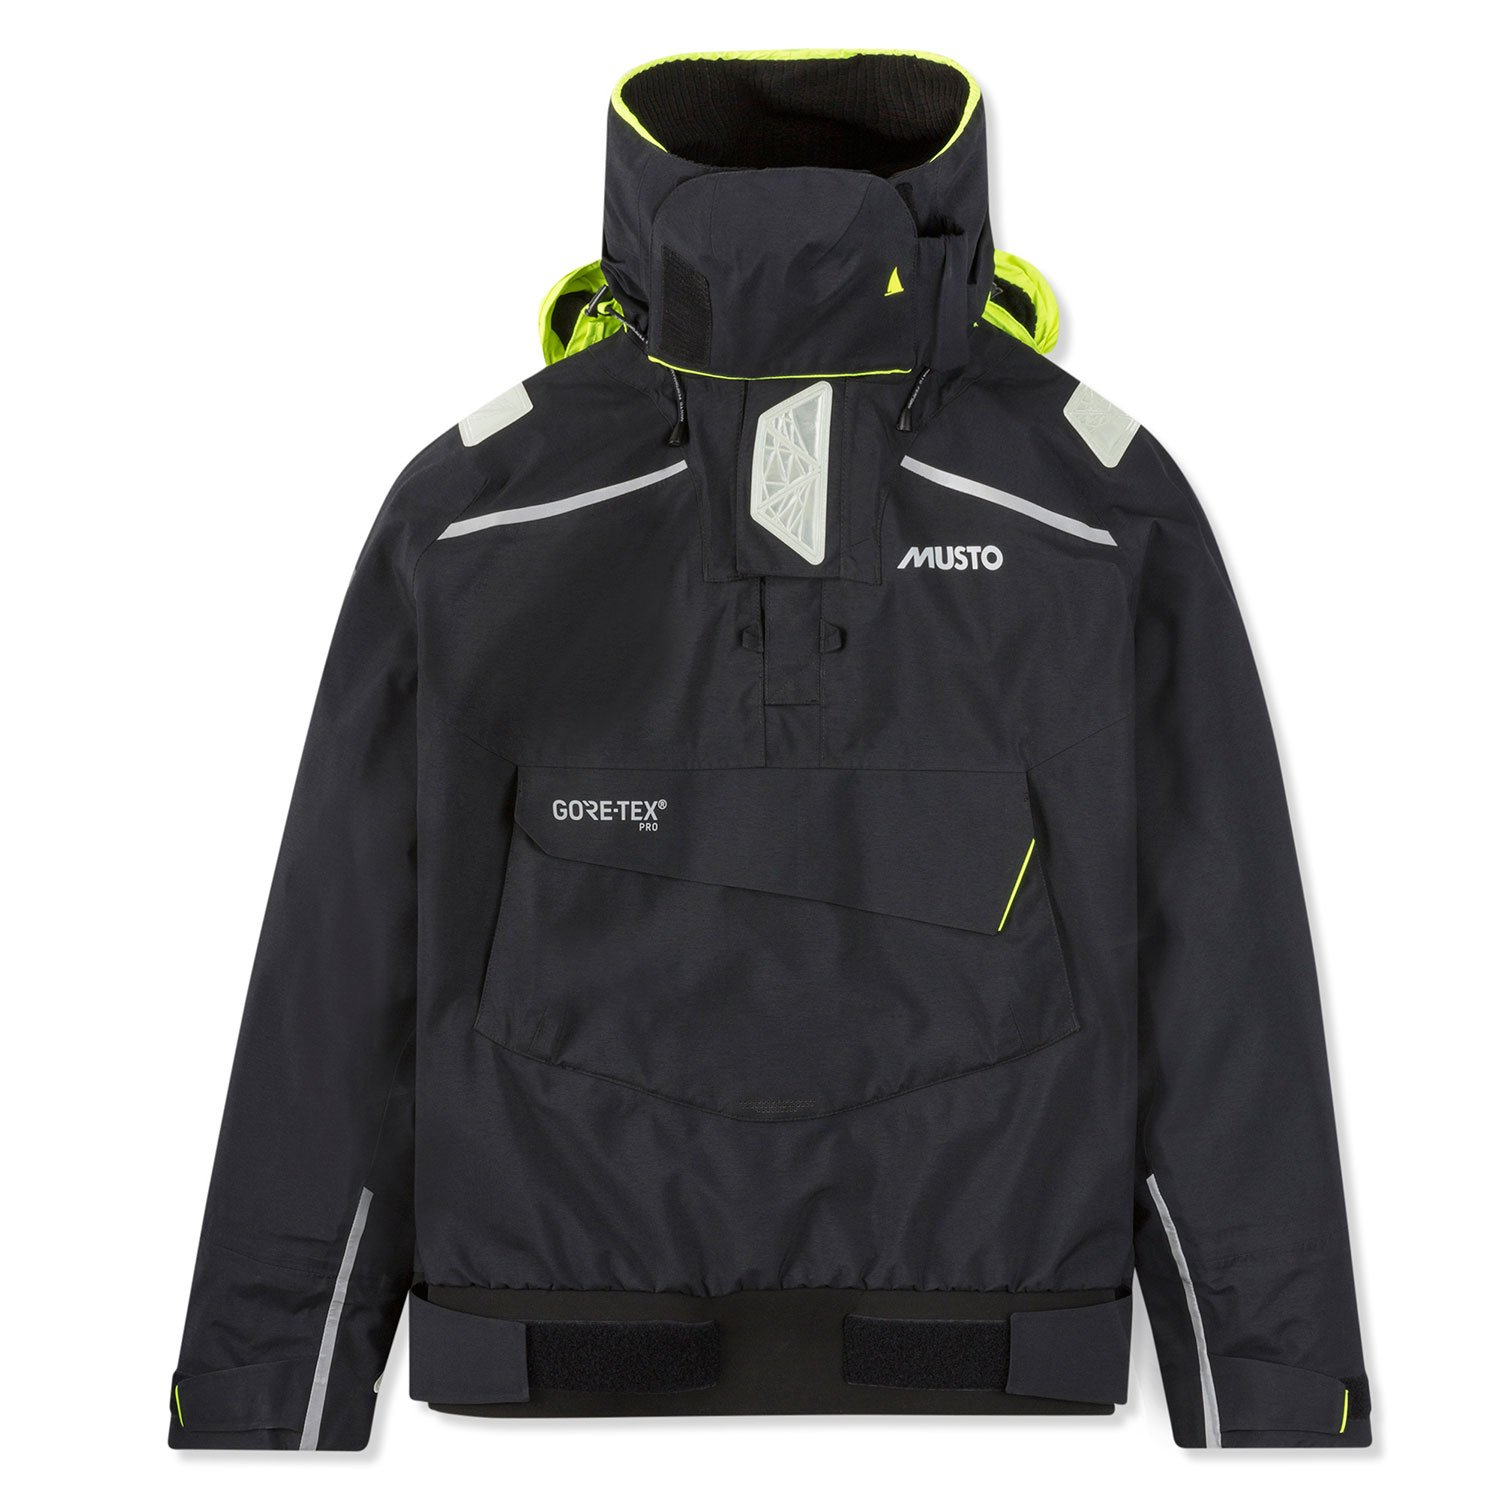 Musto MPX Gore - Tex Pro Offshore Sailing Smock 2018 – ブラック Large  B0797D1LJR